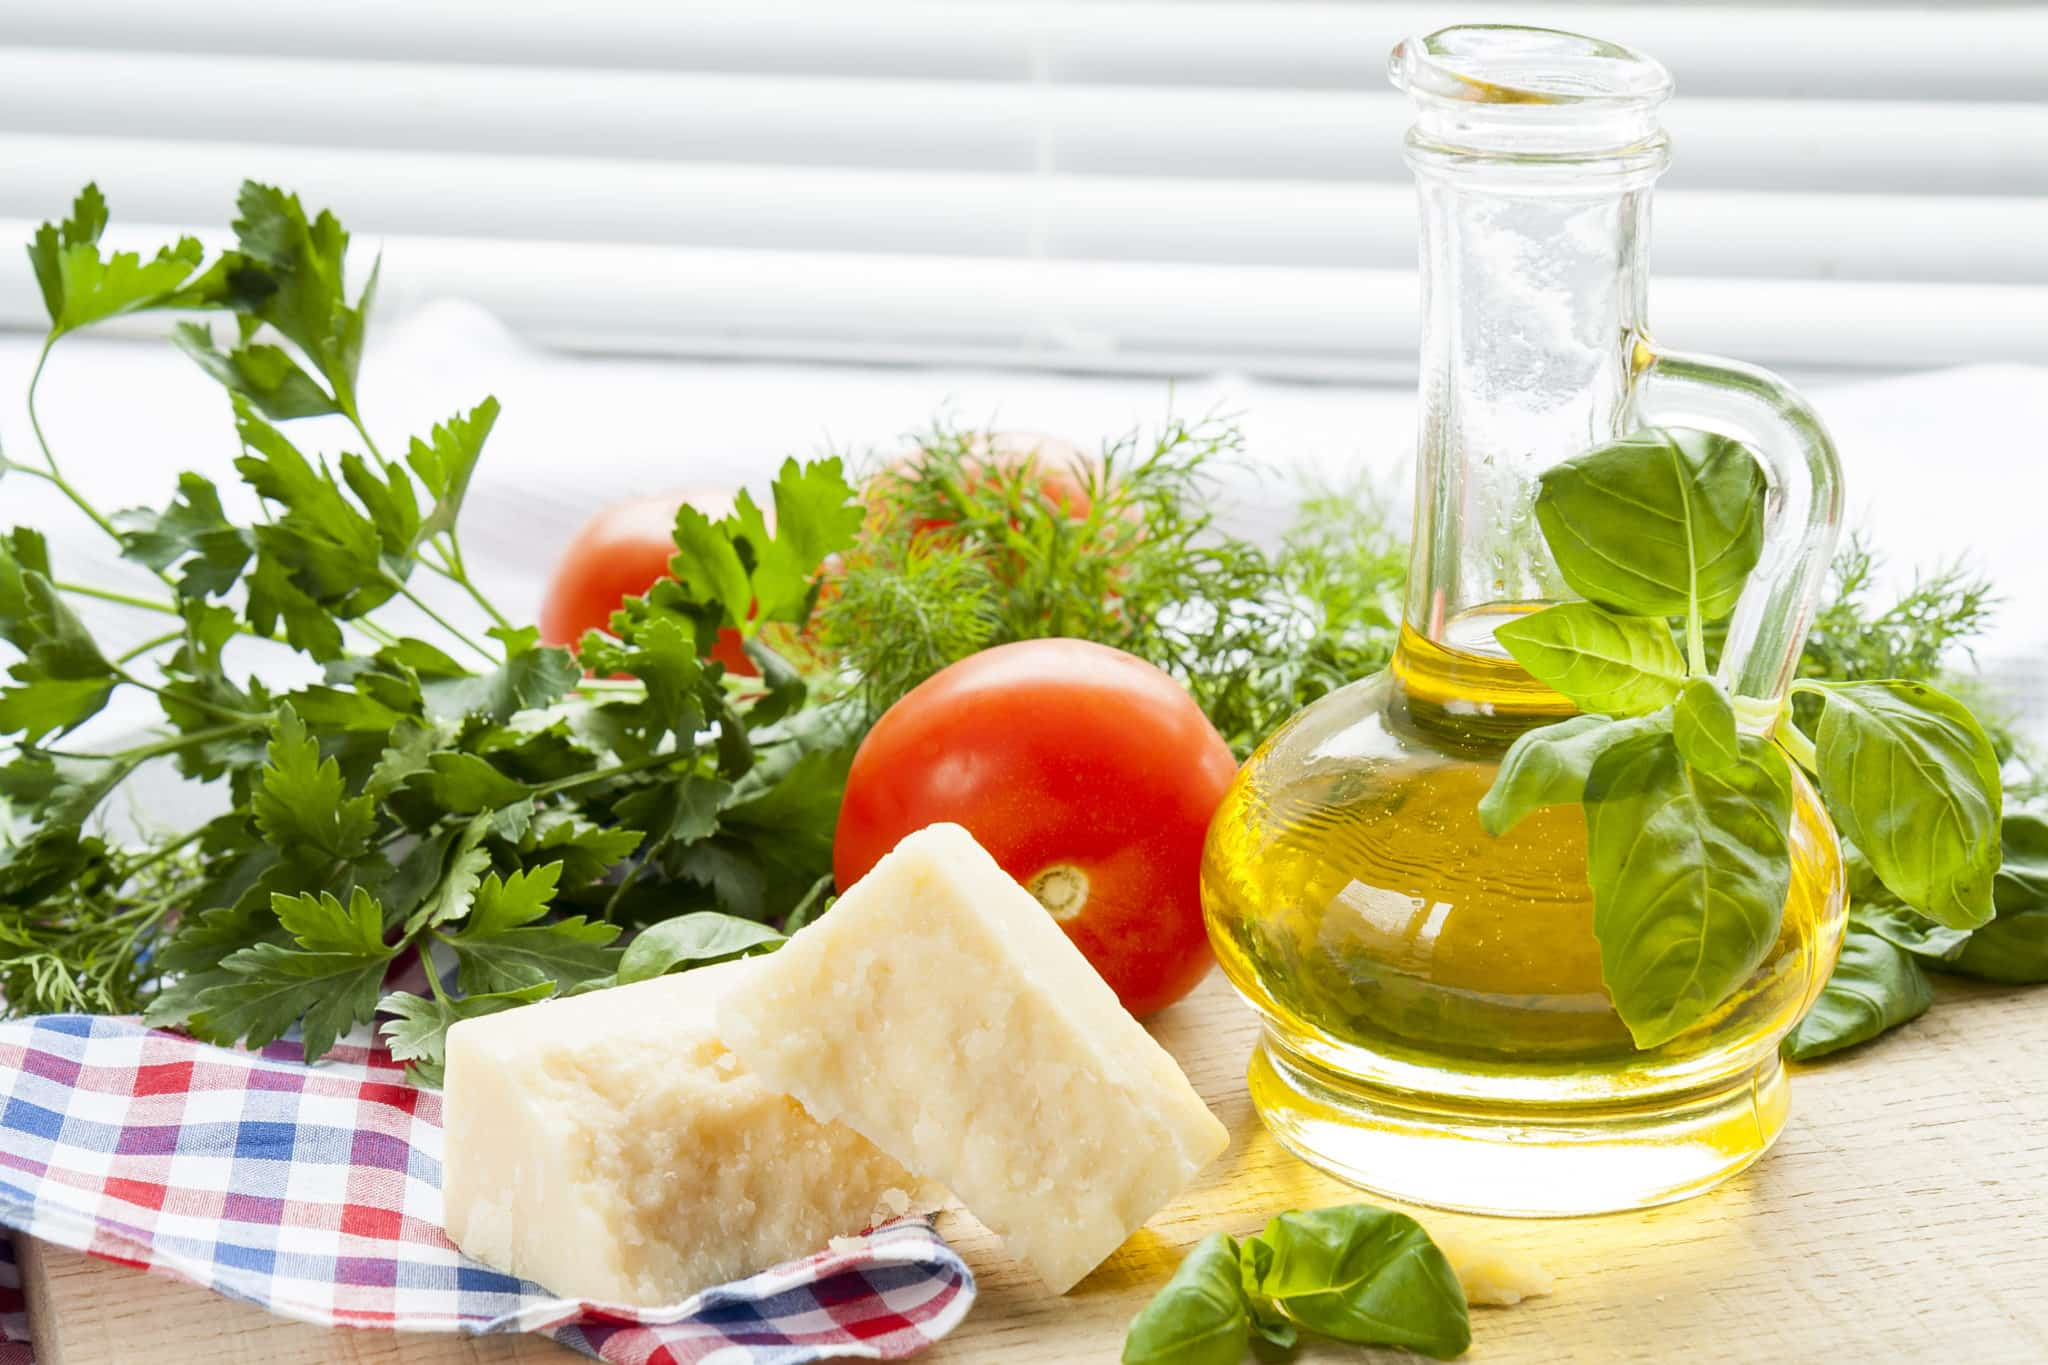 Known as the world's healthiest diet, get started with the Mediterranean diet with these super yummy recipes.